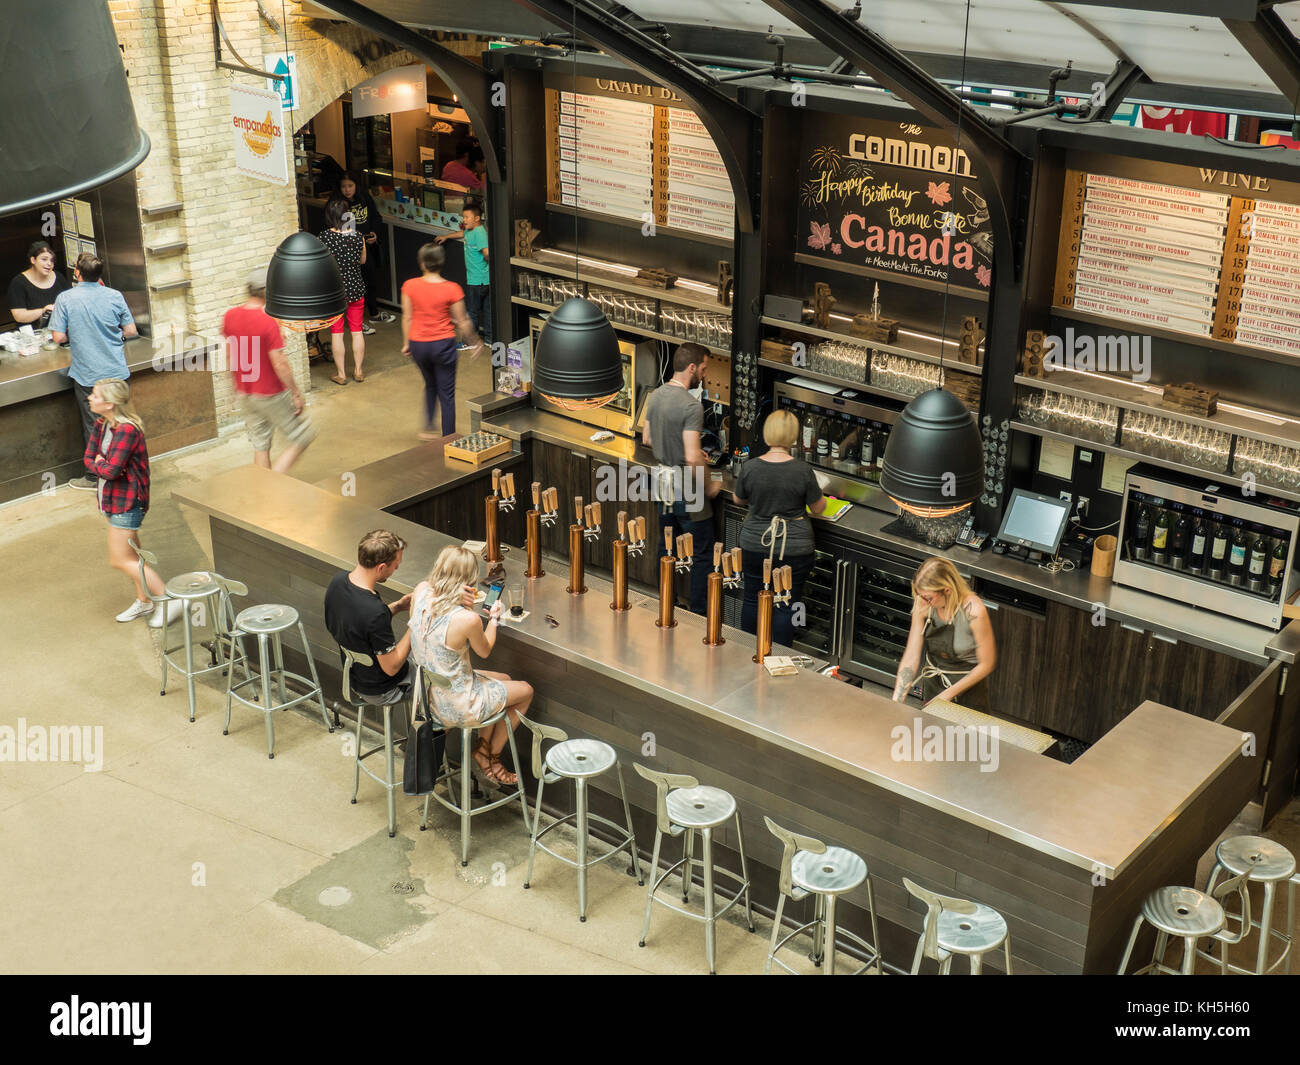 Inside the Forks Market, The Forks National Historic Site, Winnipeg, Manitoba, Canada. - Stock Image